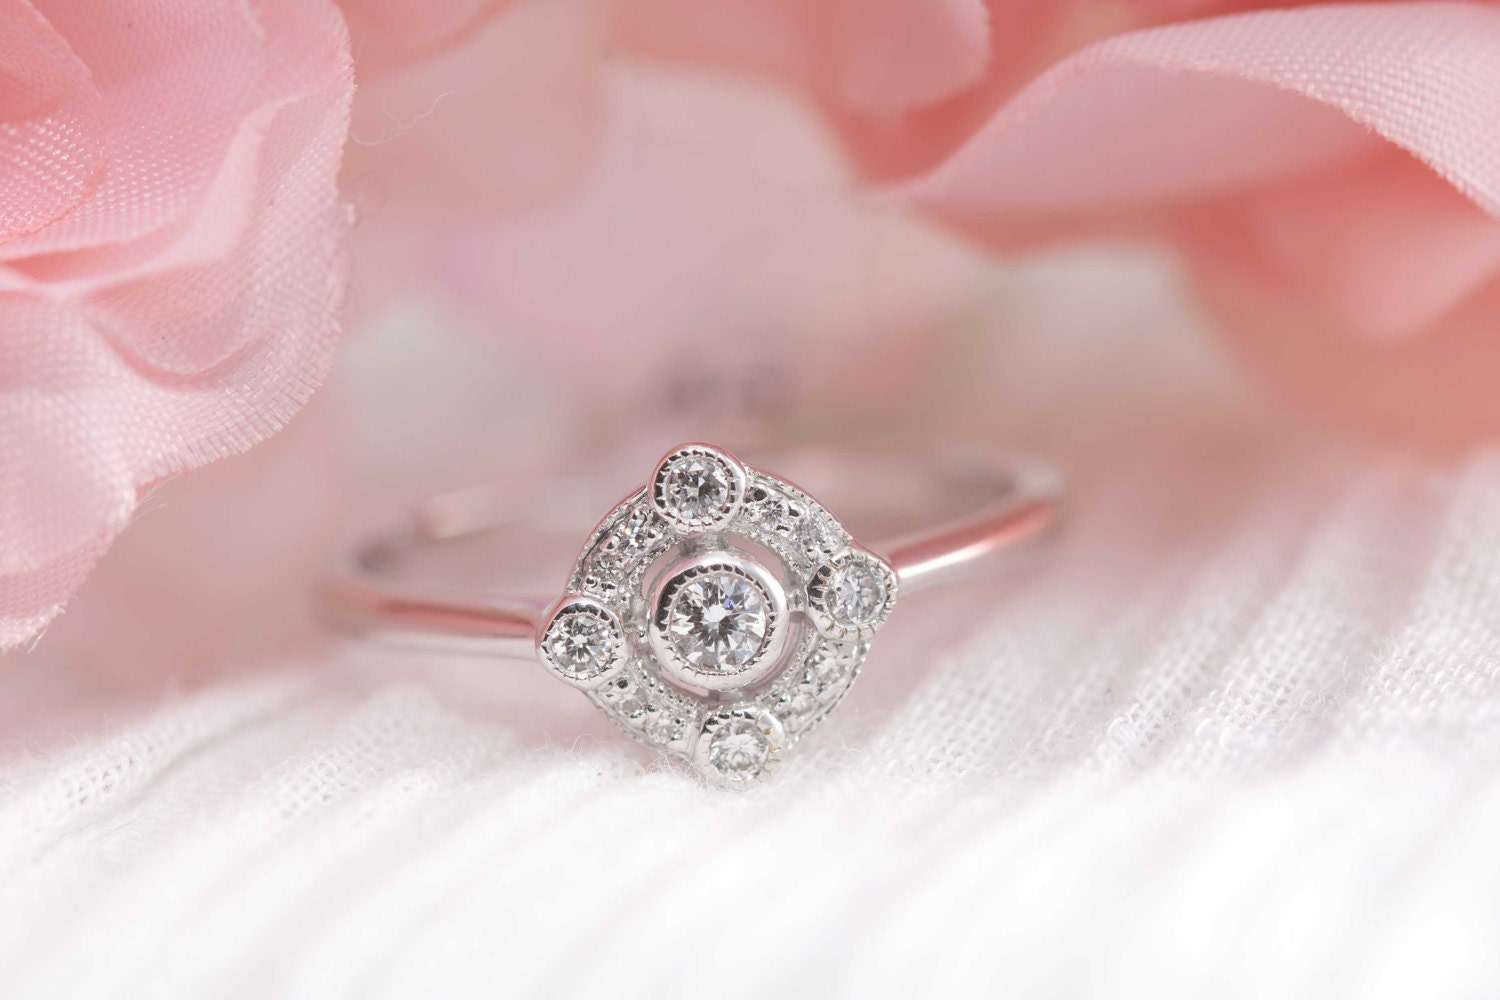 Art deco inspired diamond and white gold engagement ring /